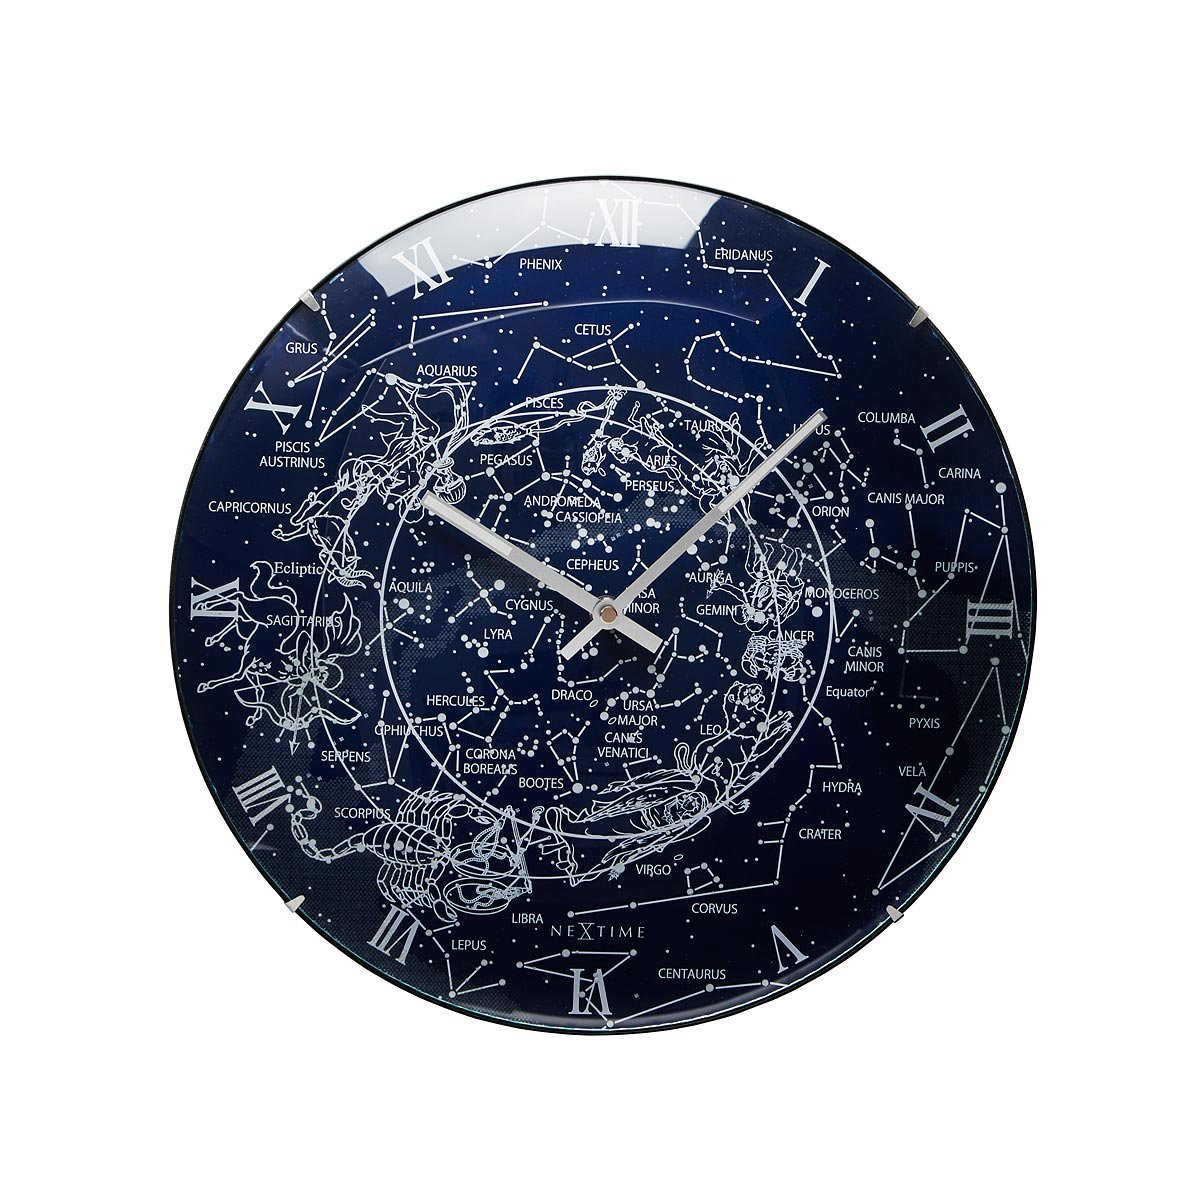 Unusual unique clocks recycled clocks cool clocks uncommongoods glowing milky way wall clock amipublicfo Image collections